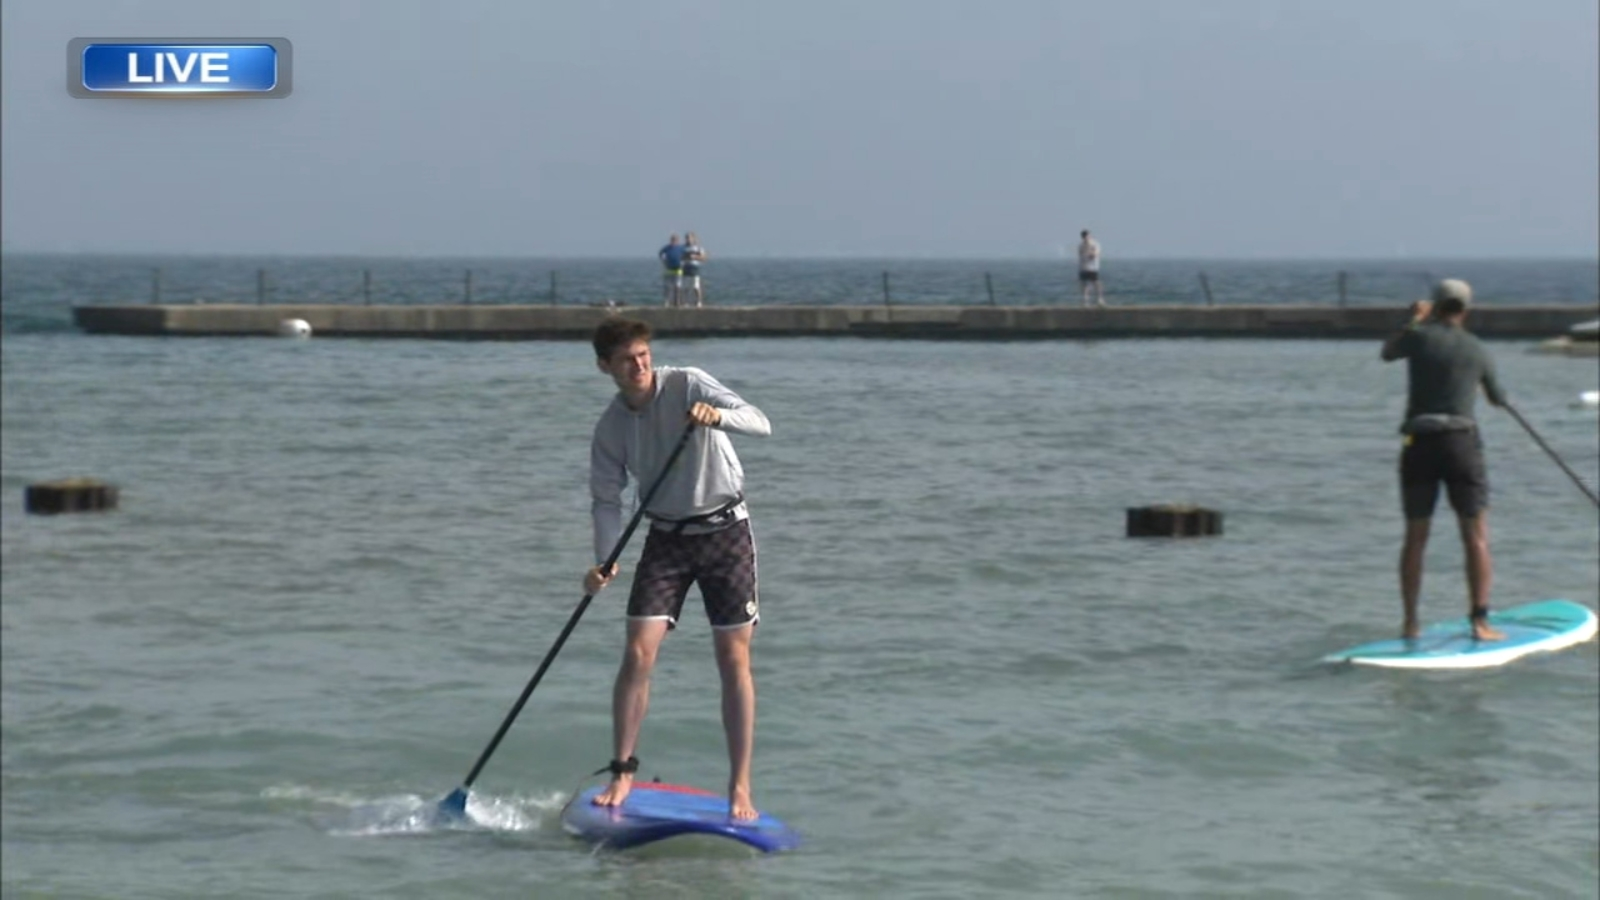 CrossTown Fitness holds paddle boarding classes at North Avenue Beach